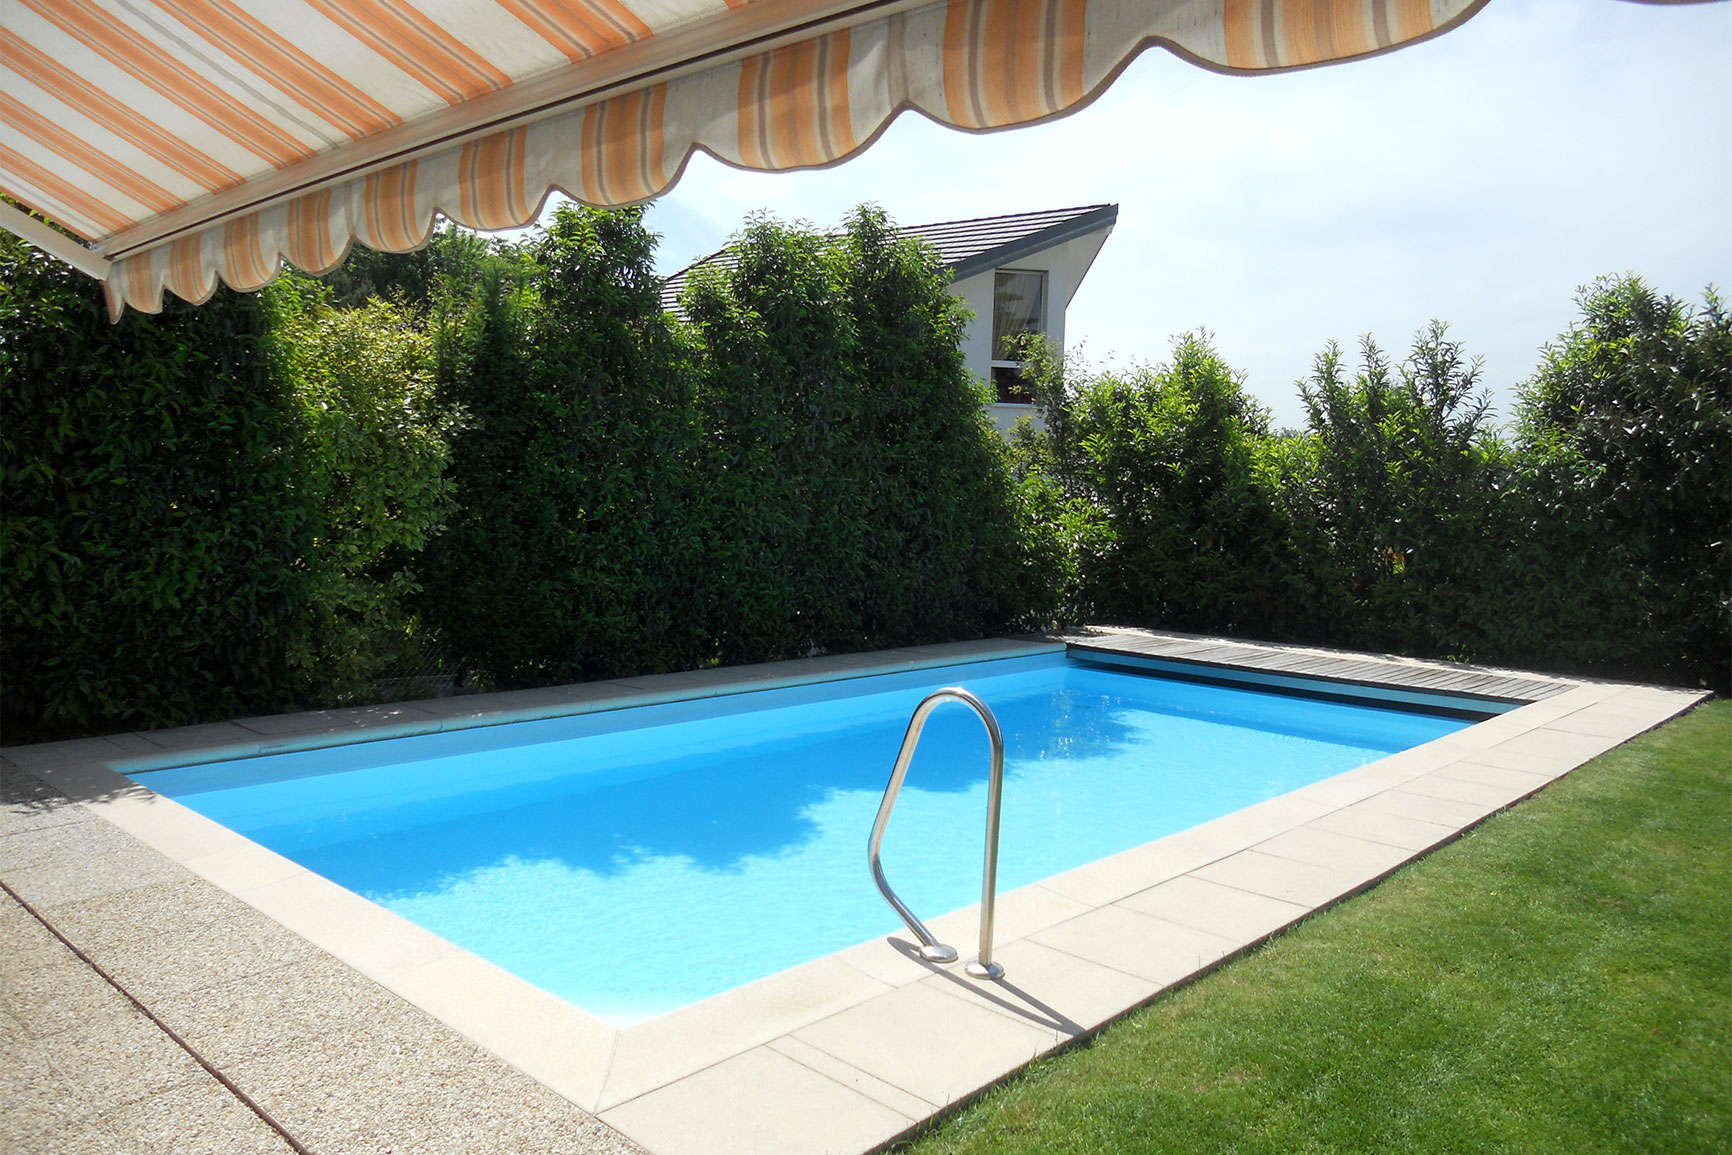 Classique liner piscines widmer for Liner piscine diametre 3 50